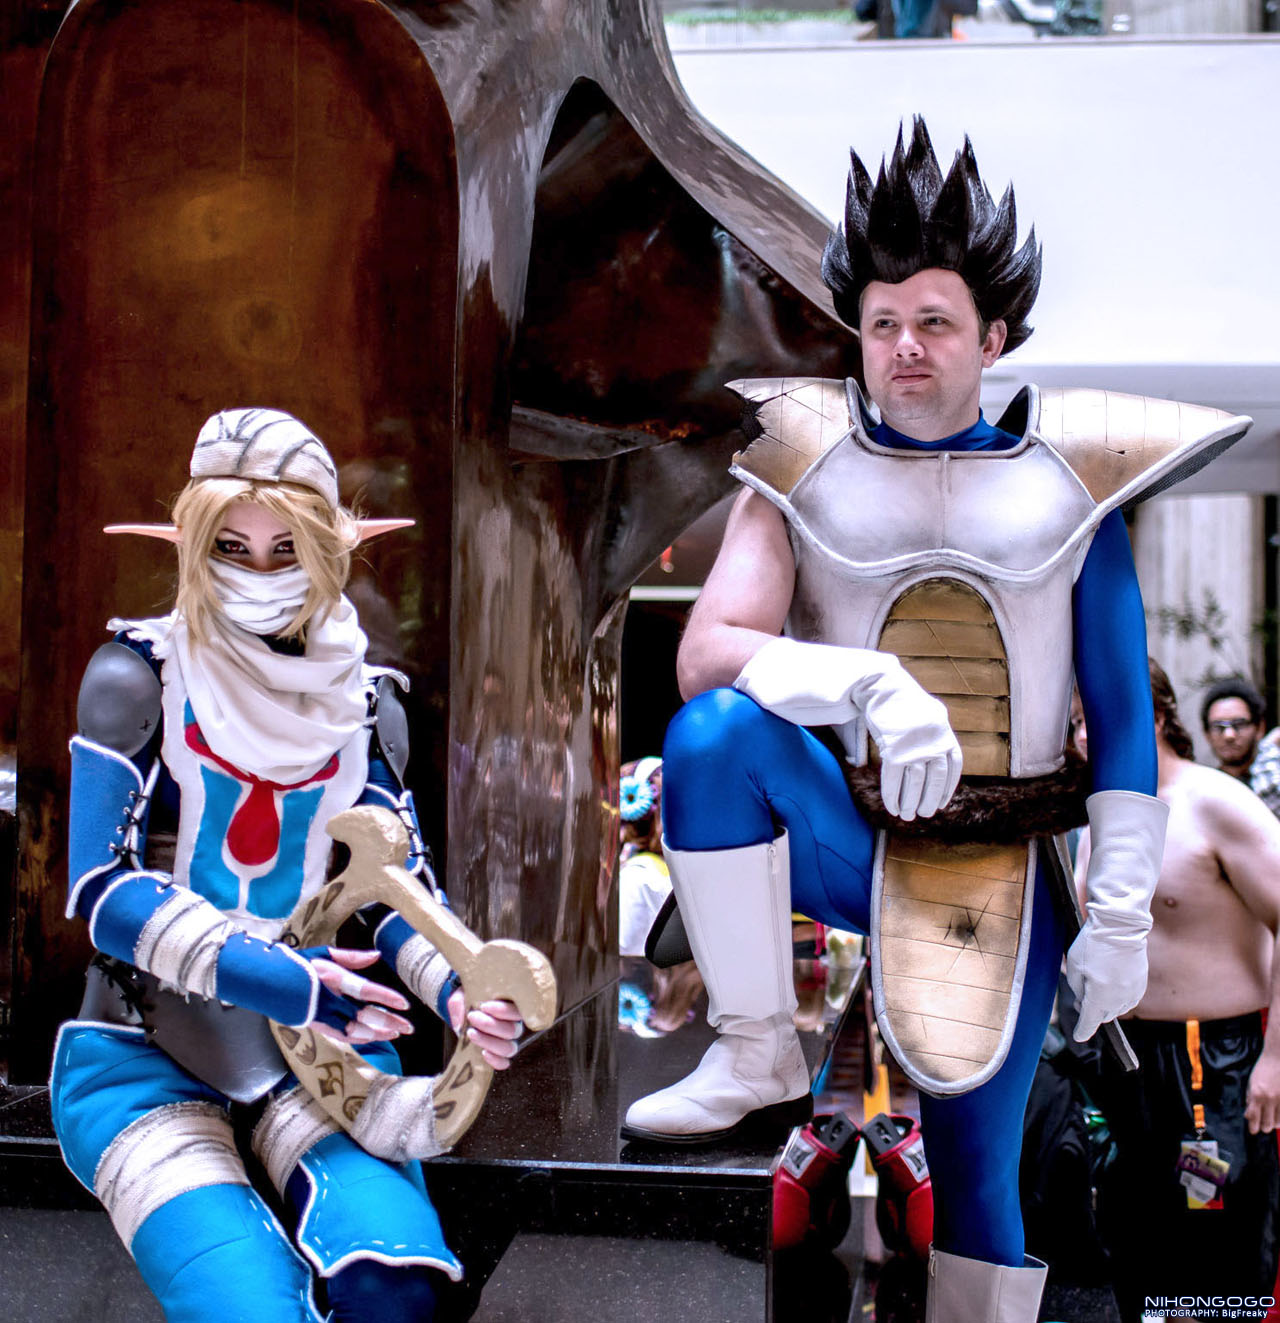 Cosplay roundup at the 2015 anime central expo in chicago part 3 16